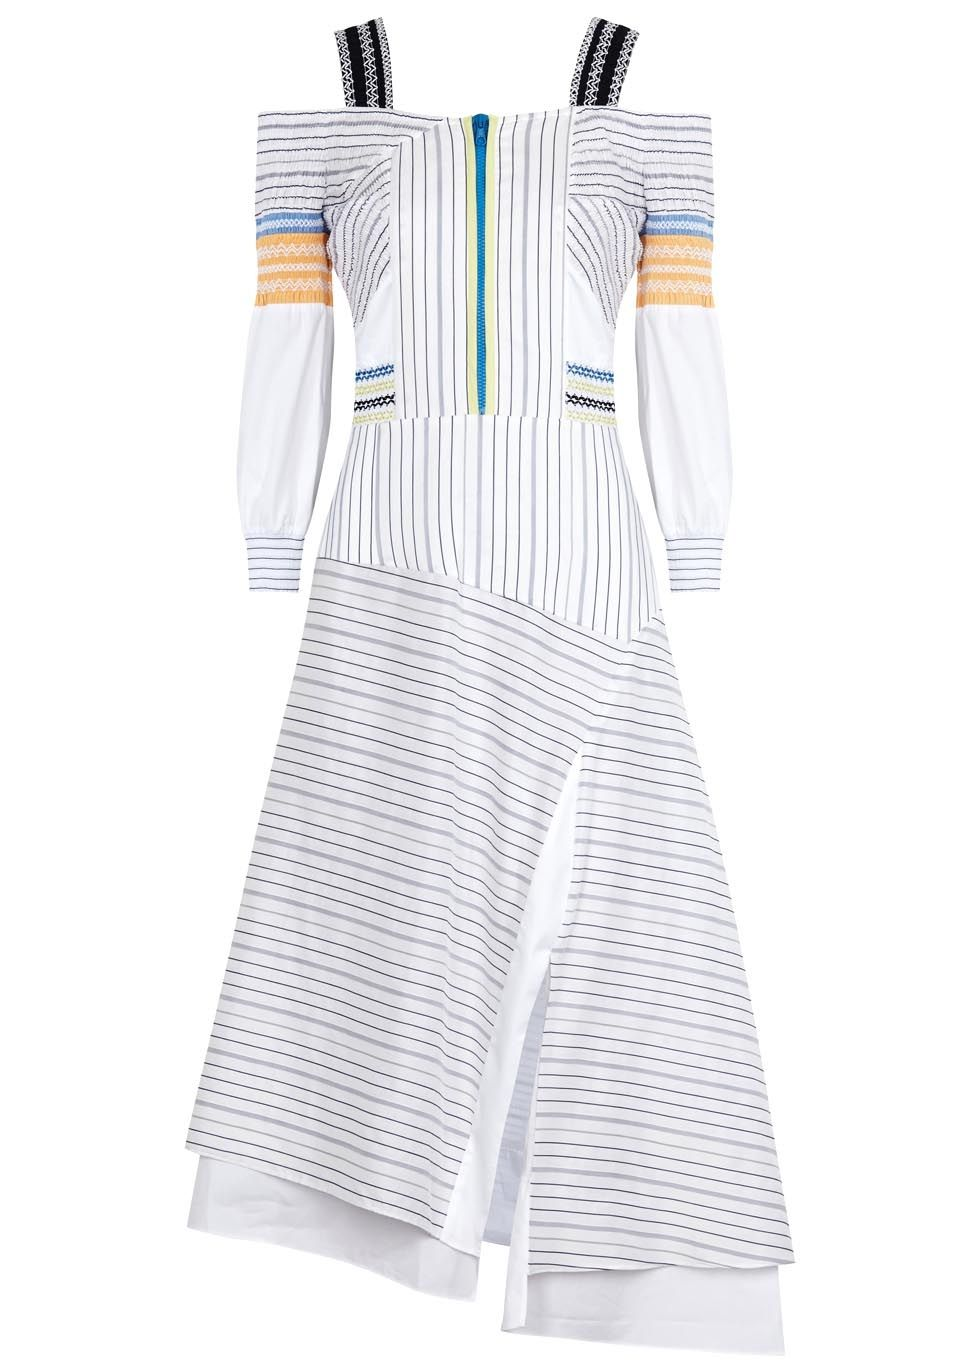 Peter pilotto white cotton and silk blend gown elasticated shoulder